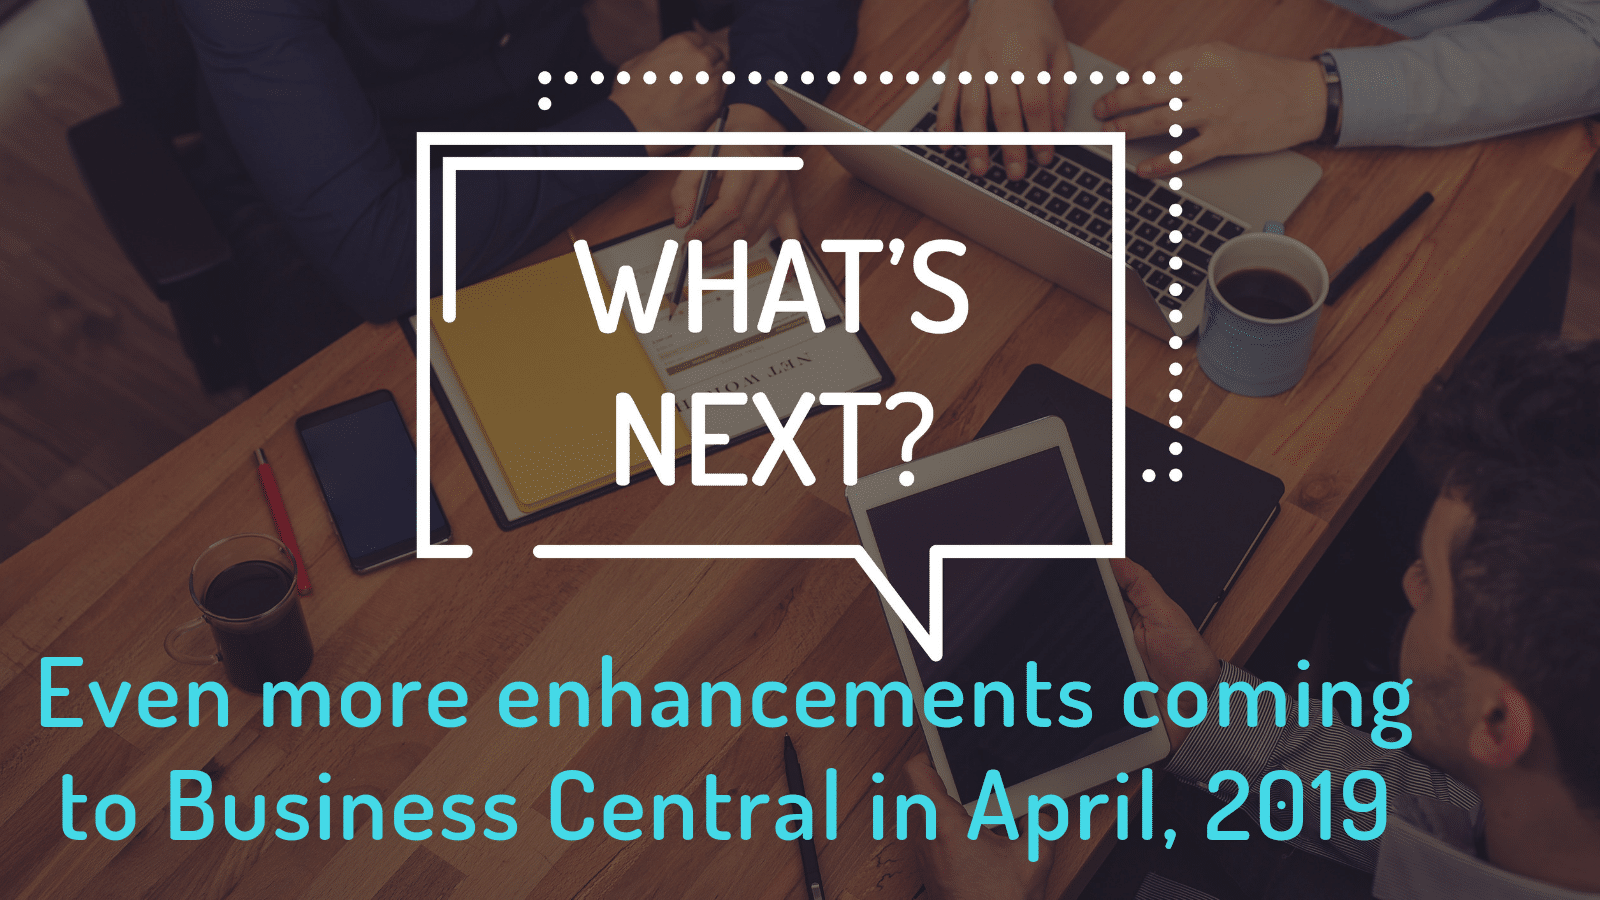 Even more enhancements coming to Business Central in April 2019